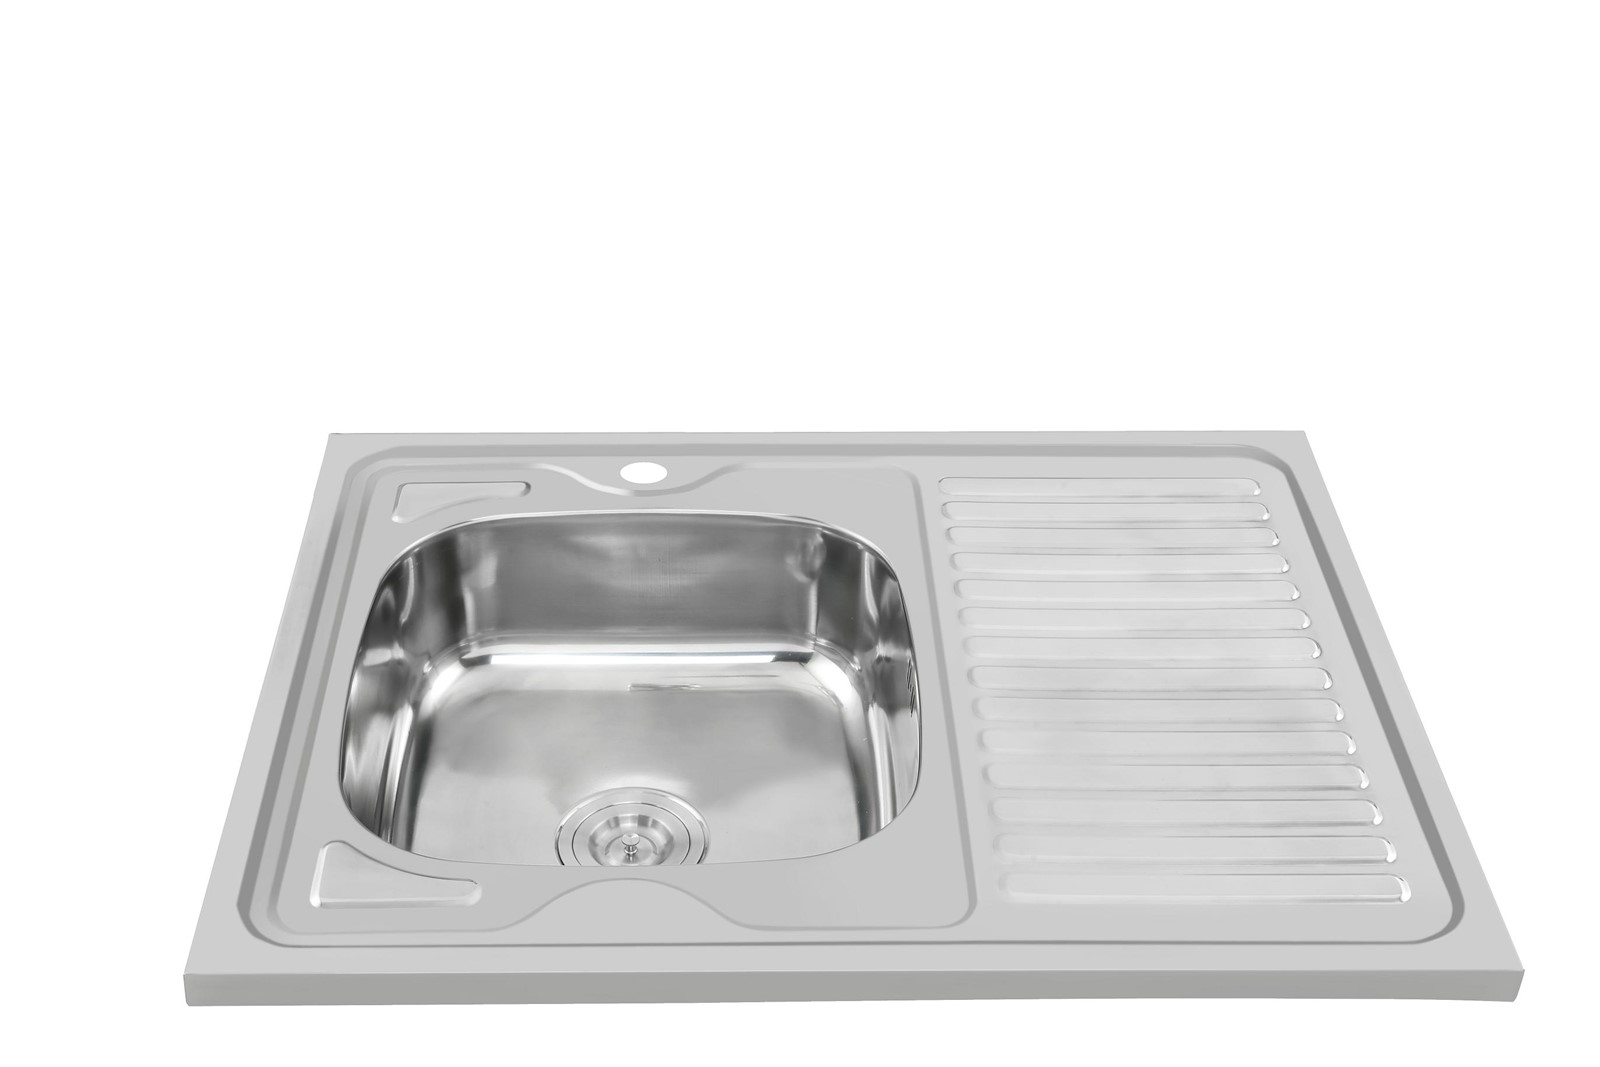 Kitchen Sink Suppliers : Factory Supply Kitchen Sink WY-8060SA (WY-8060SA) - China Sink ...